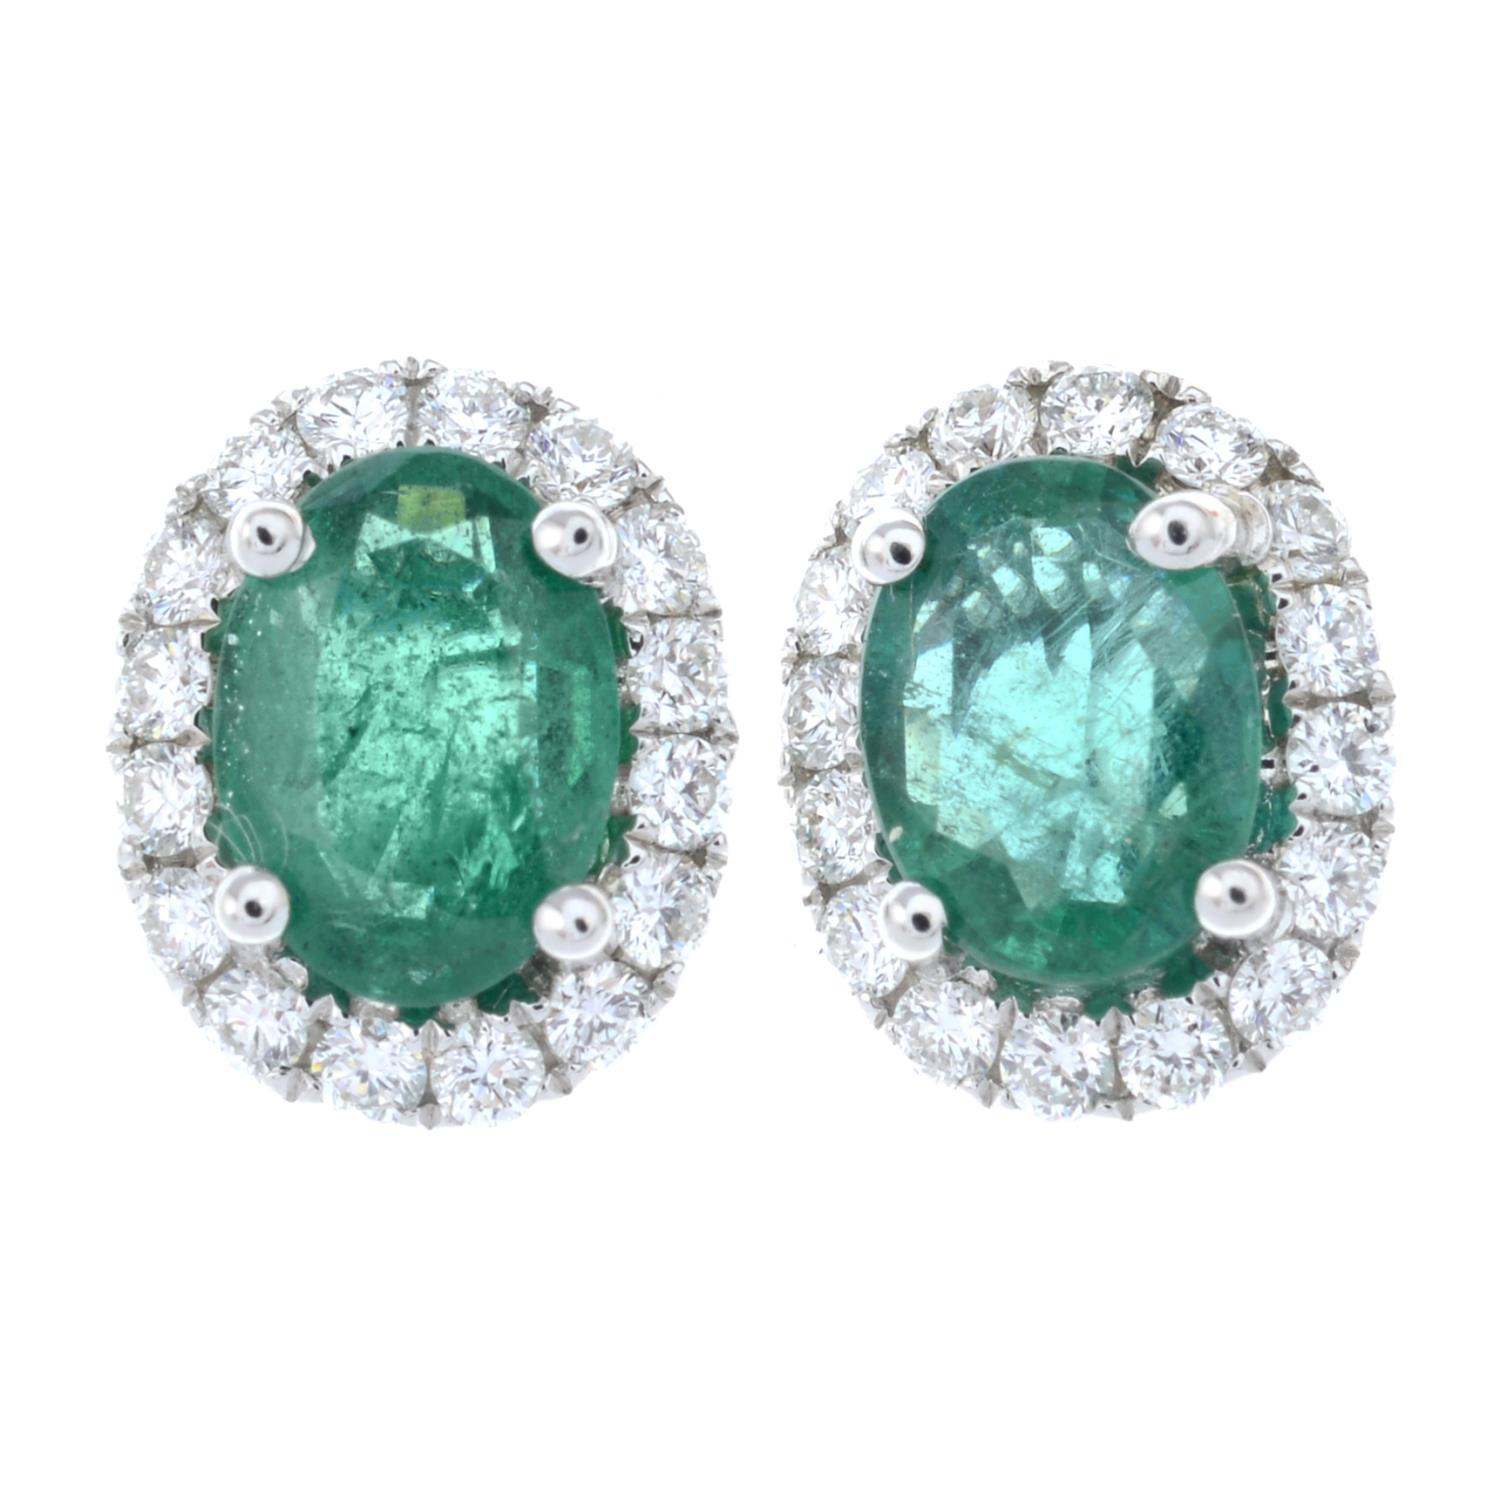 A pair of emerald and diamond cluster earrings.Total emerald weight 1.16cts.Total diamond weight - Image 2 of 3